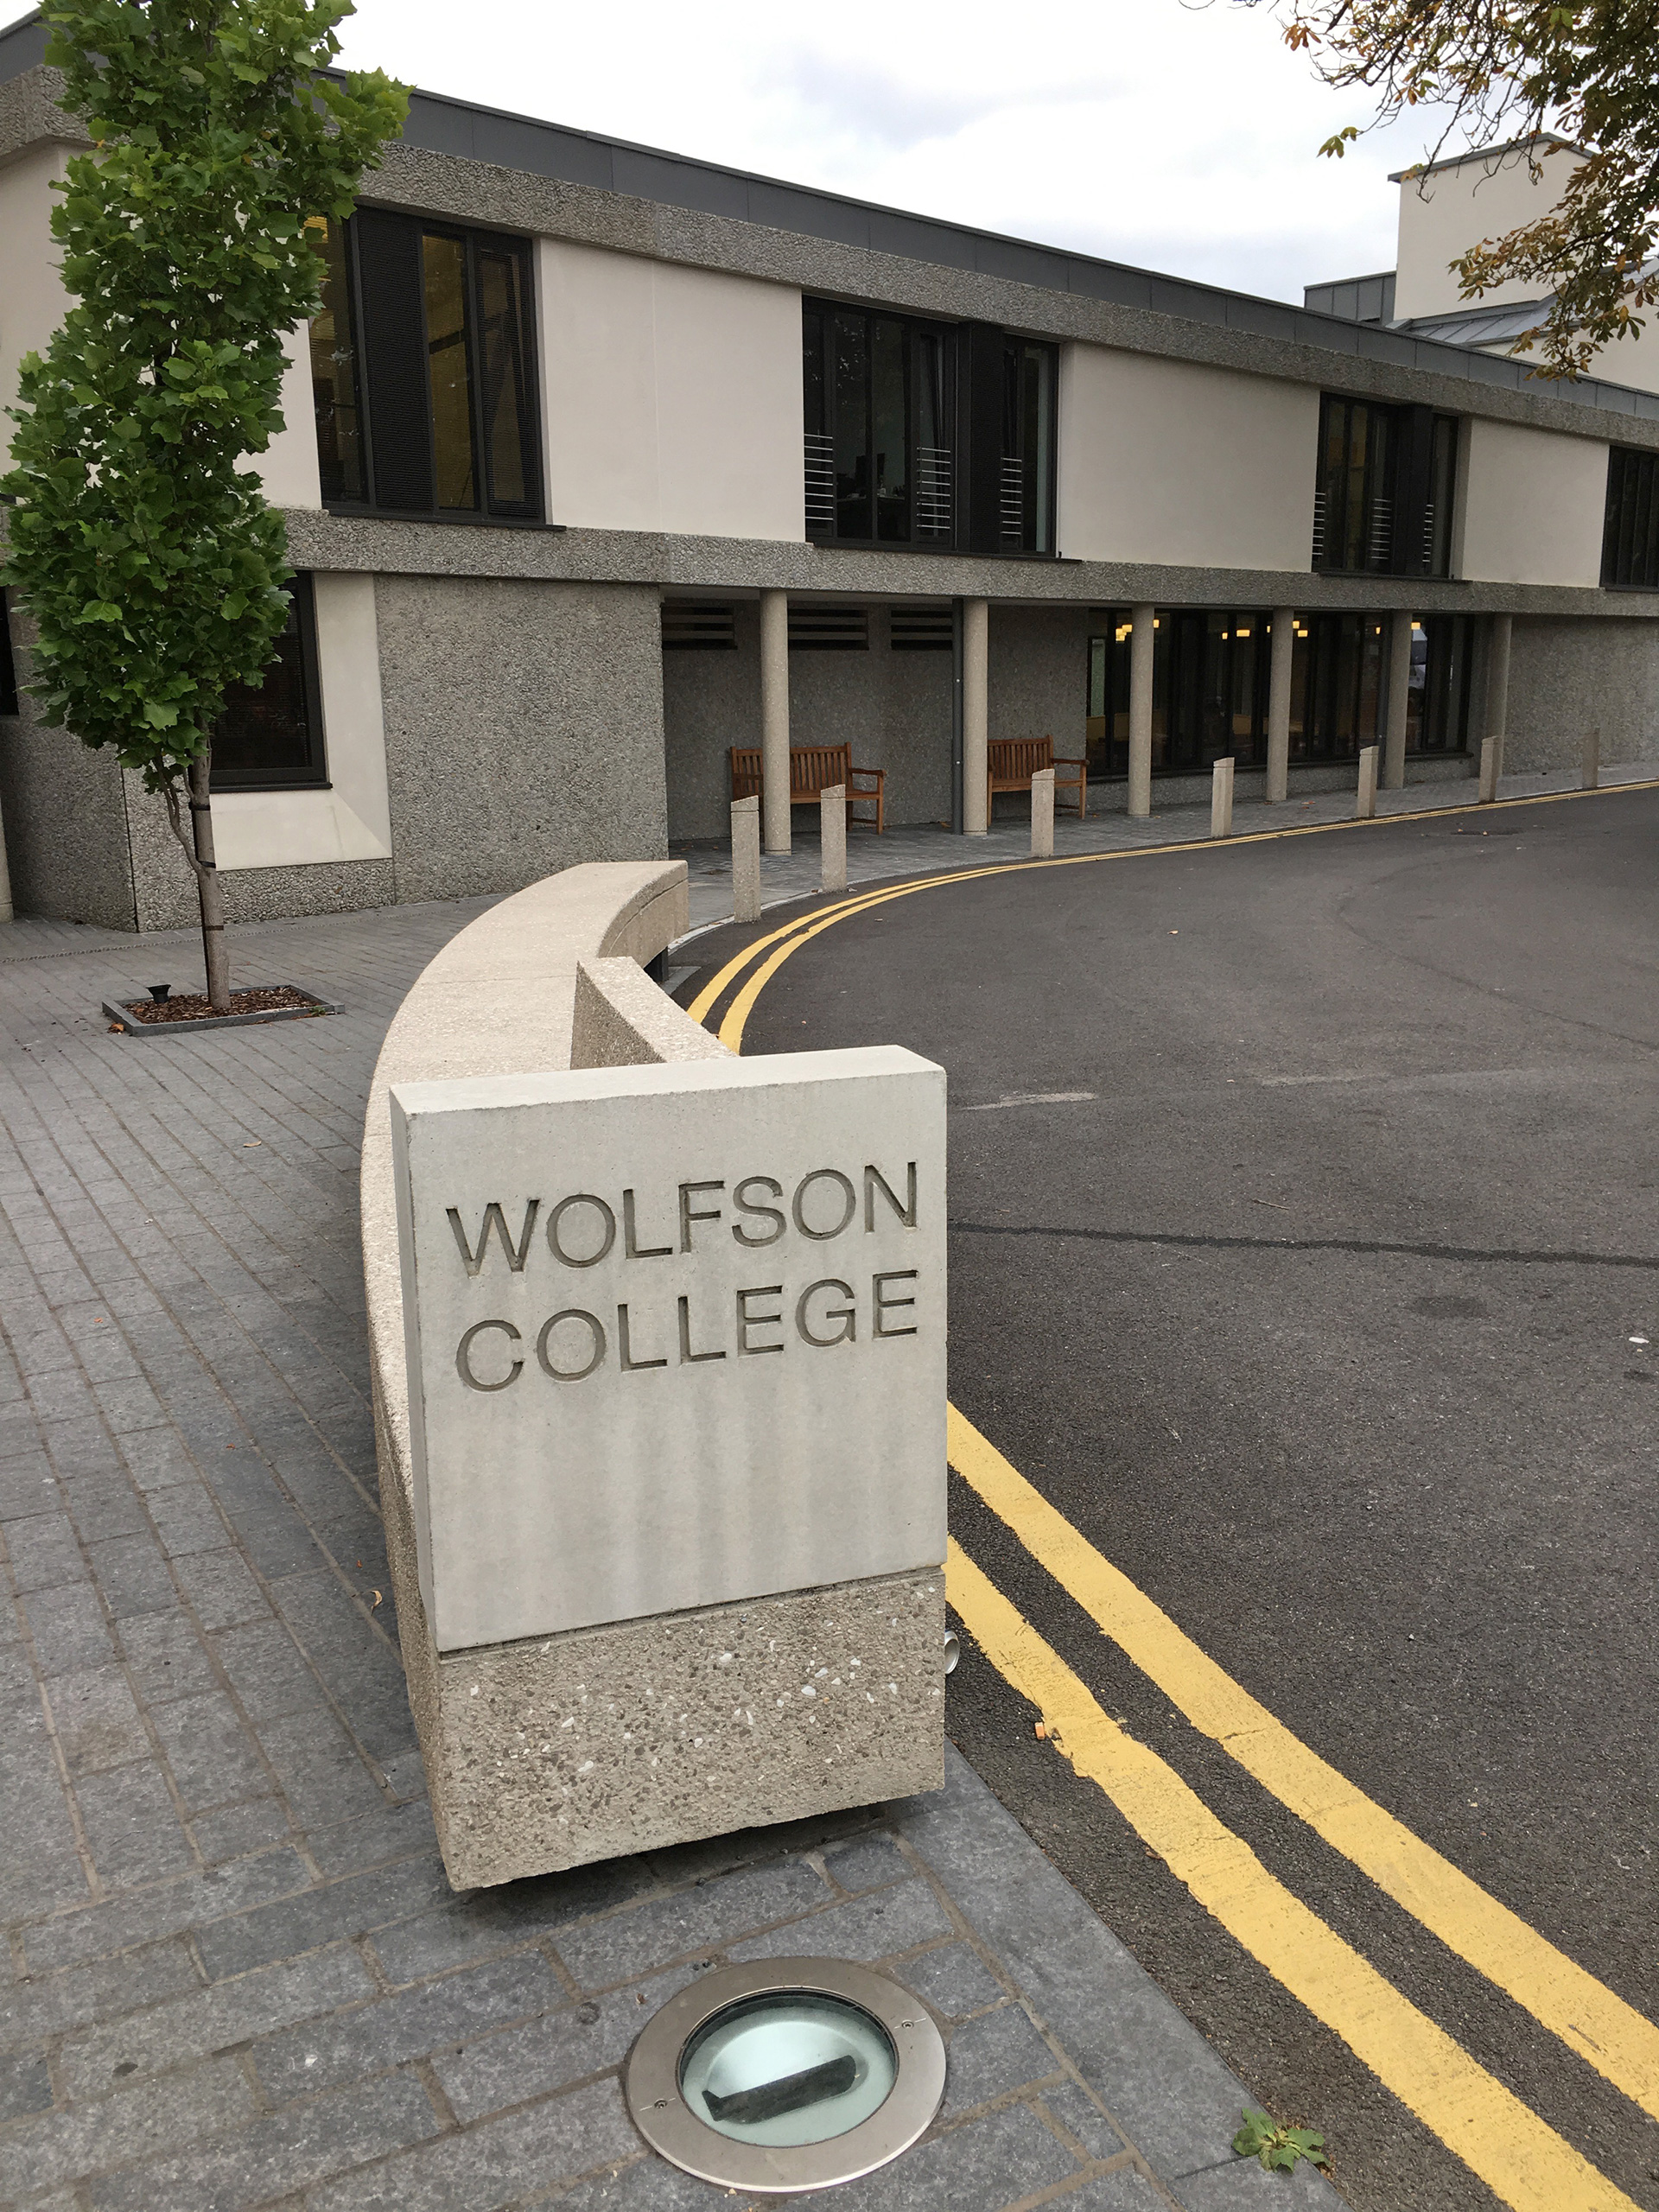 The entrance to the college, a modest low-level sign, curving into a seat for the weary Linton road traveller | Modernity in/as Heritage – The architecture of Wolfson College, Oxford | Amit Khanna | STIR